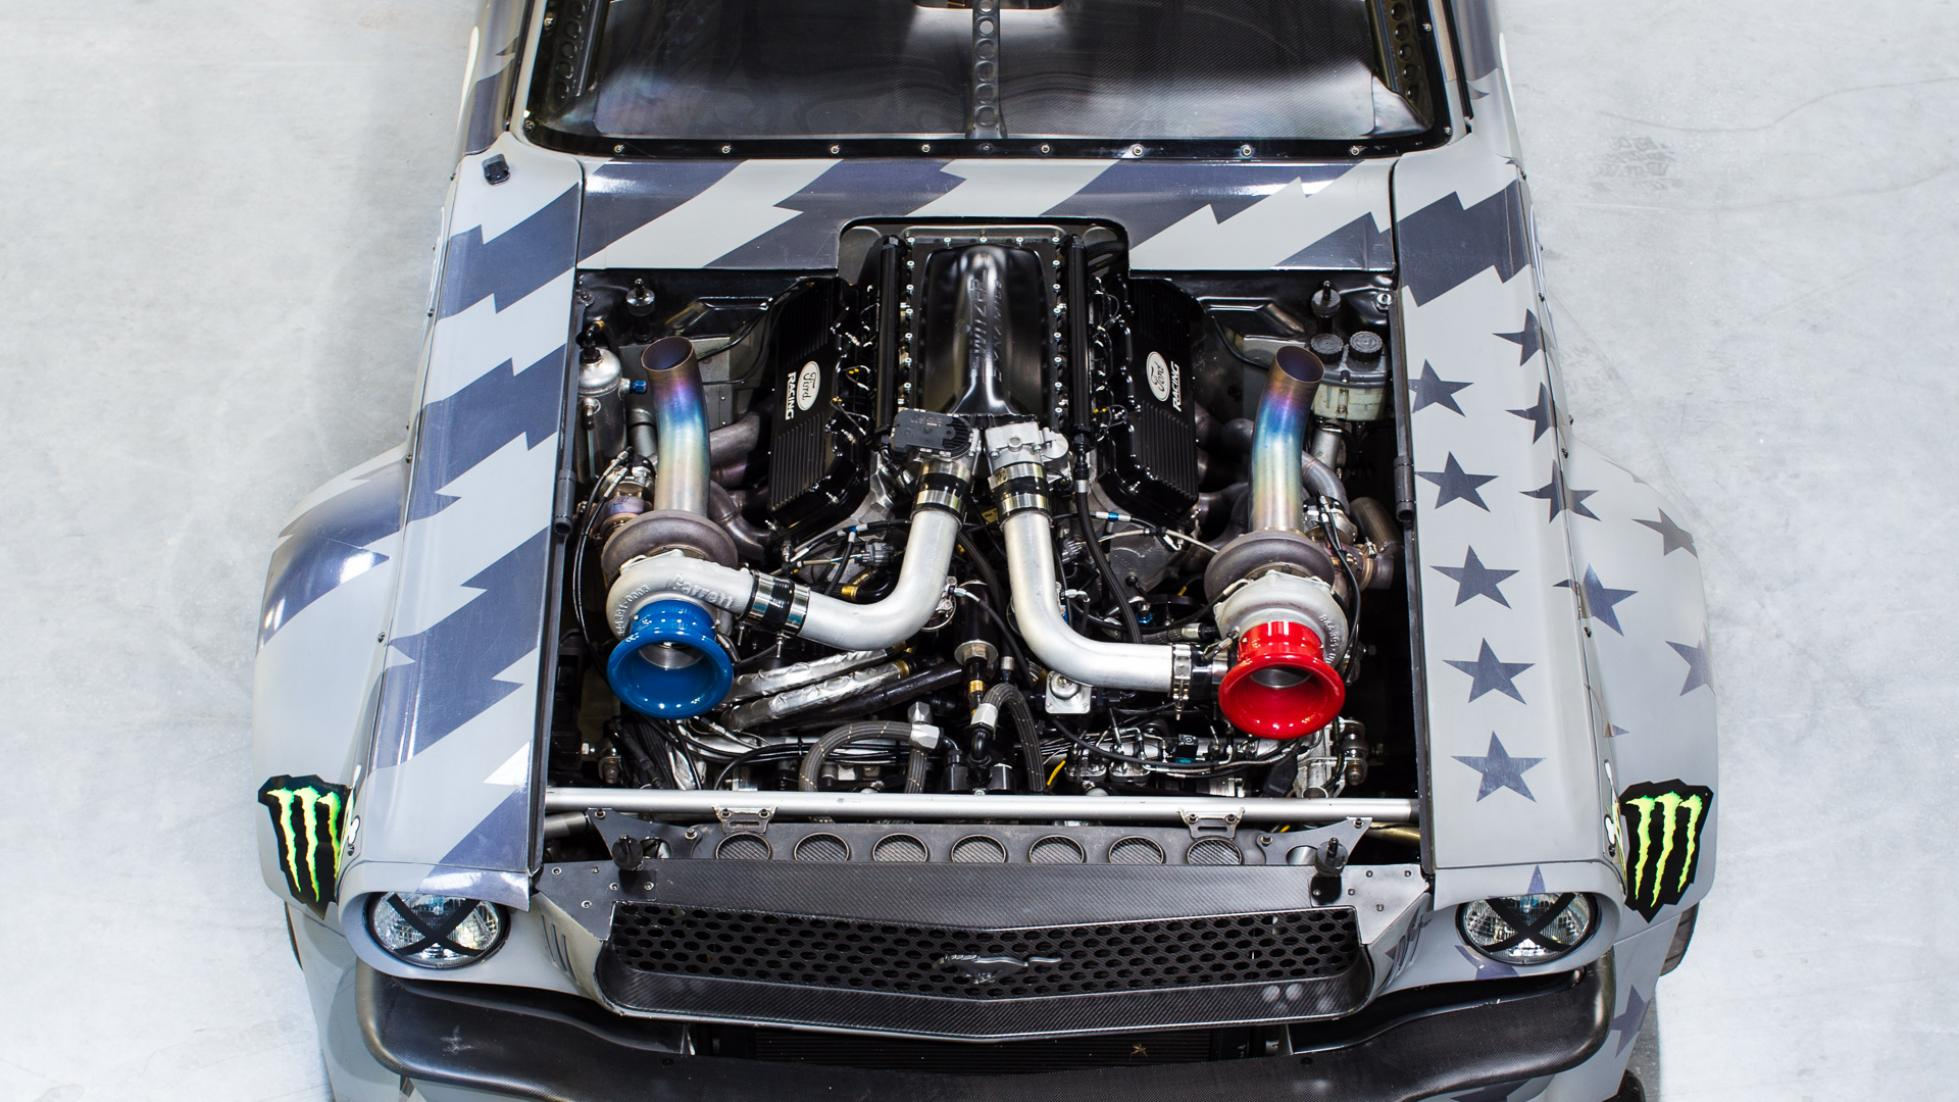 Ken Blocks New 1400 HP Hoonicorn Mustang 2 two turbos 4